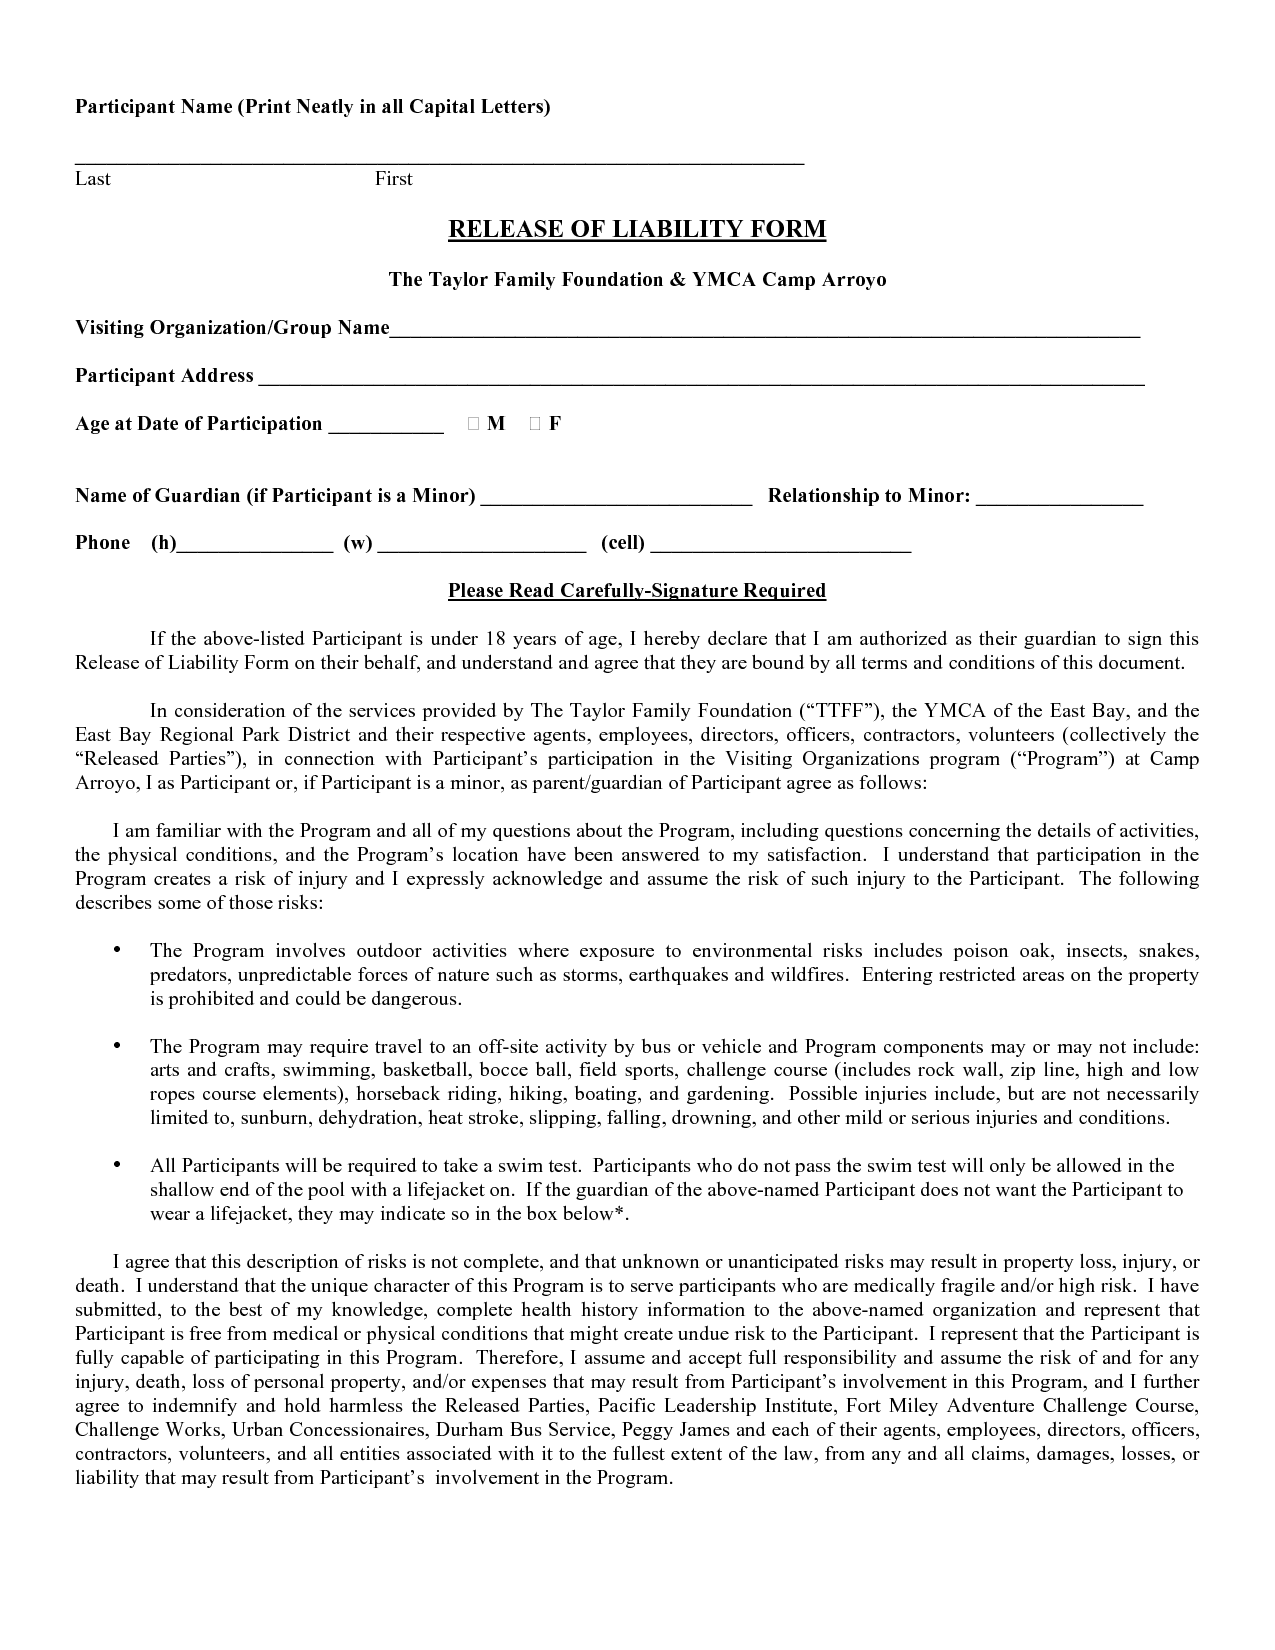 Get Liability Form Forms Free Printable. With Premium Design And Ready To  Print Online . In Free Printable Liability Release Form